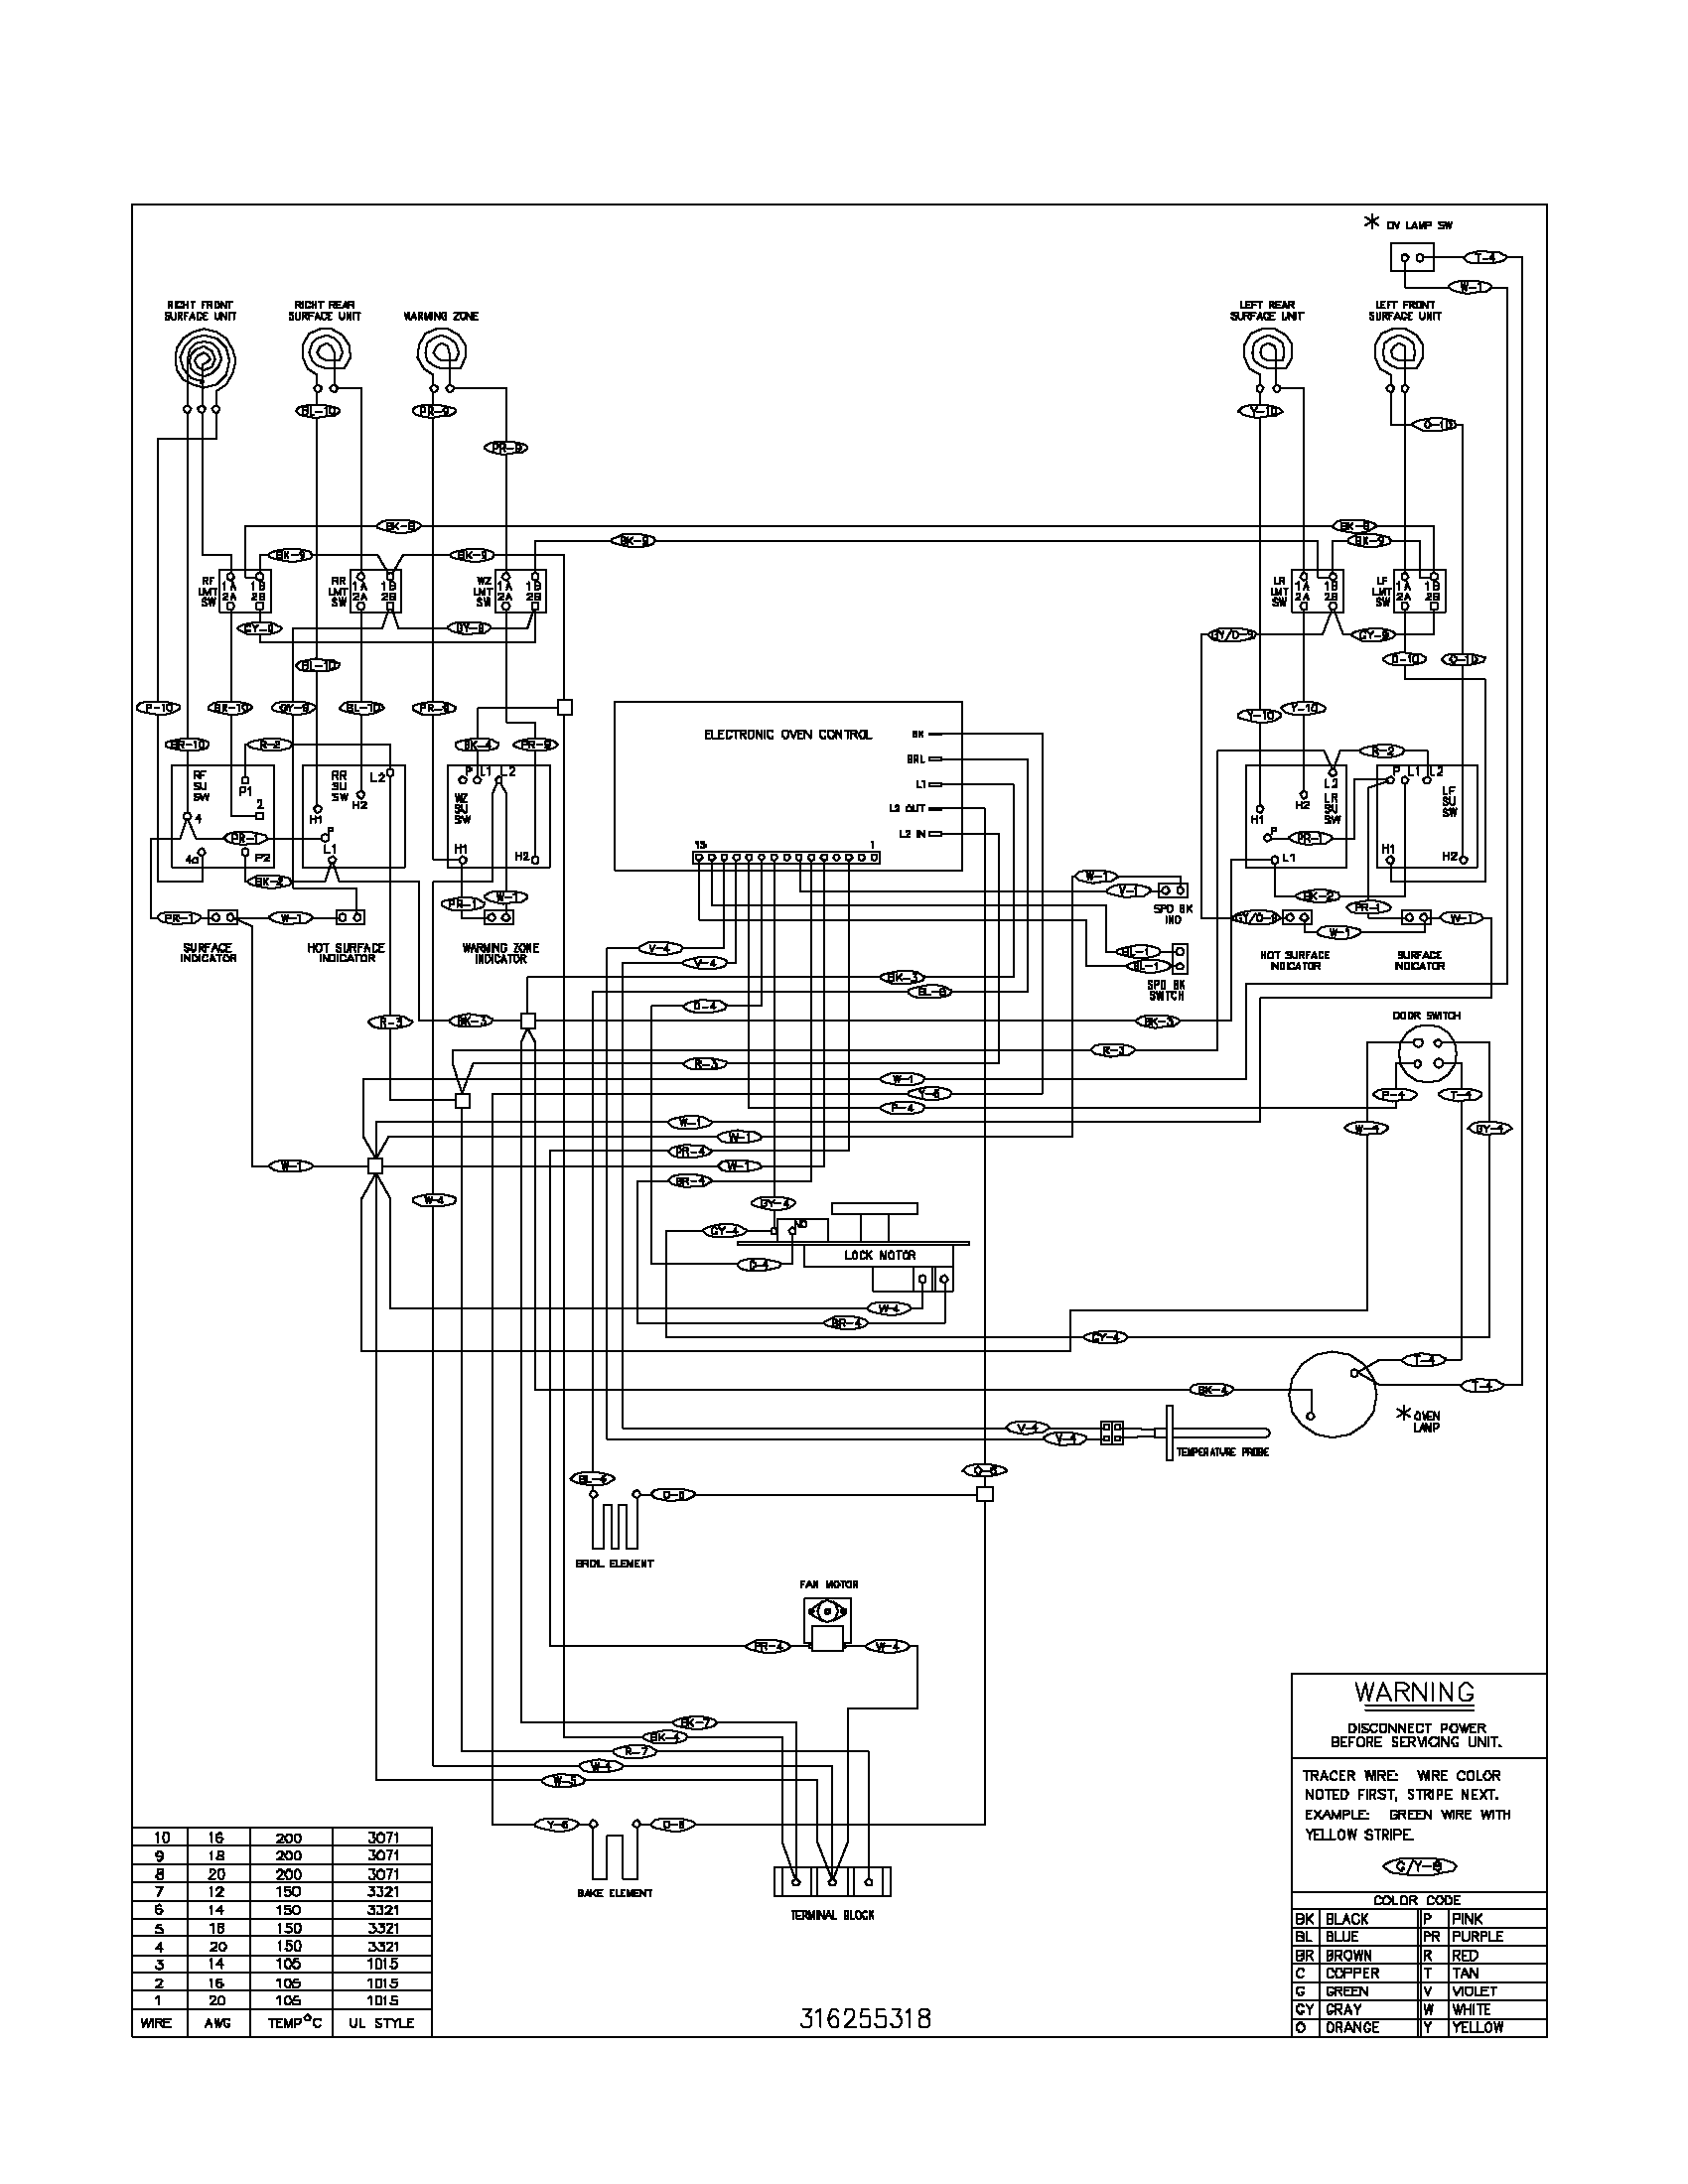 wiring diagram for oven control